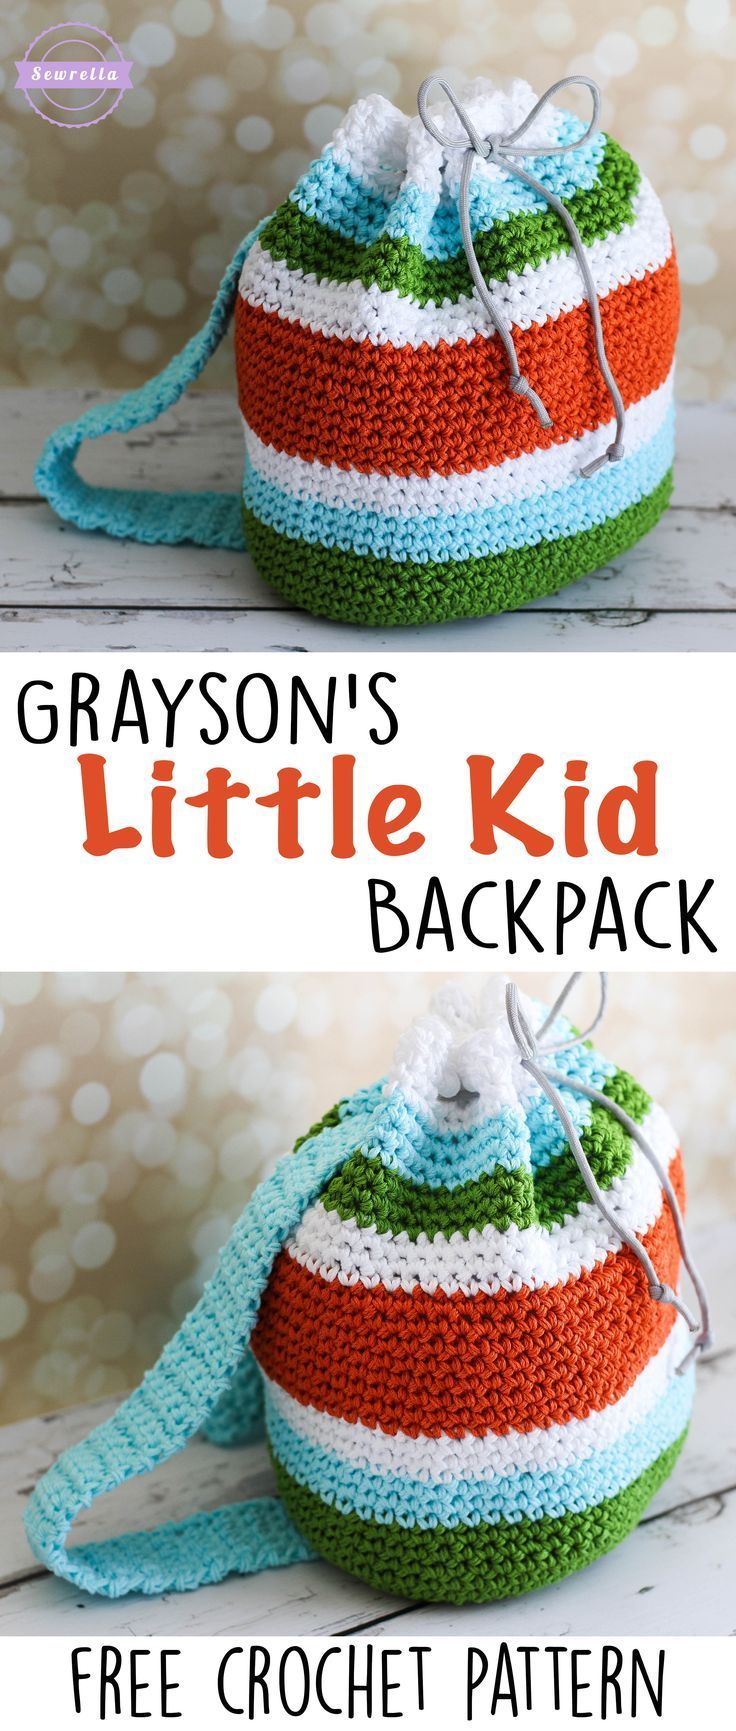 Grayson's Little Kid Backpack | Back to School Series | Free Crochet Pattern from Sewrella